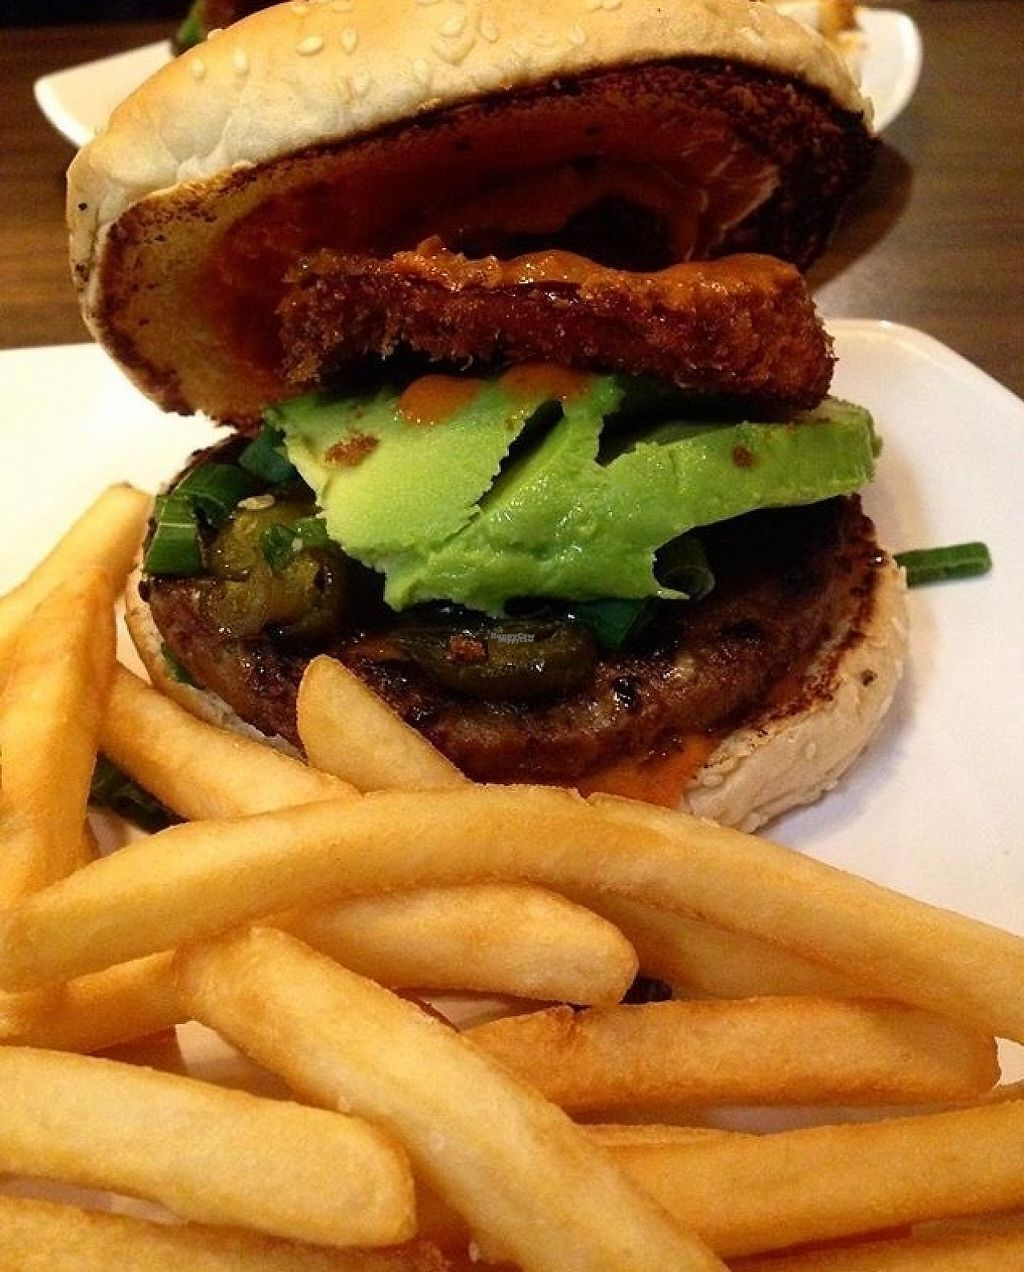 """Photo of The Happy Hooligans  by <a href=""""/members/profile/Veganlove408"""">Veganlove408</a> <br/>Red Rooster (spicy burger) with fries  <br/> February 13, 2017  - <a href='/contact/abuse/image/3758/226336'>Report</a>"""